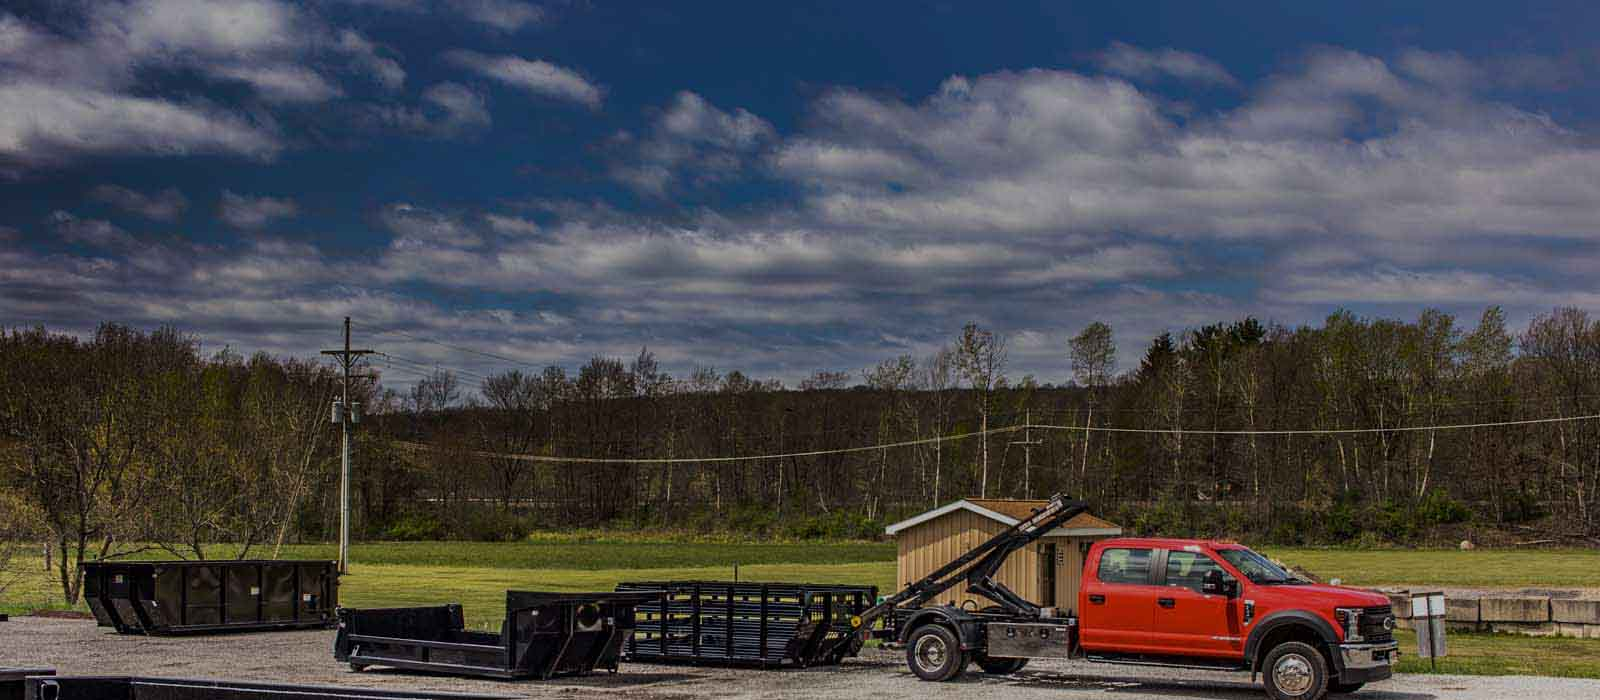 Supercharge your productivity with an interchangeable work truck body system that allows you to use over 25 different truck bodies with a single truck.